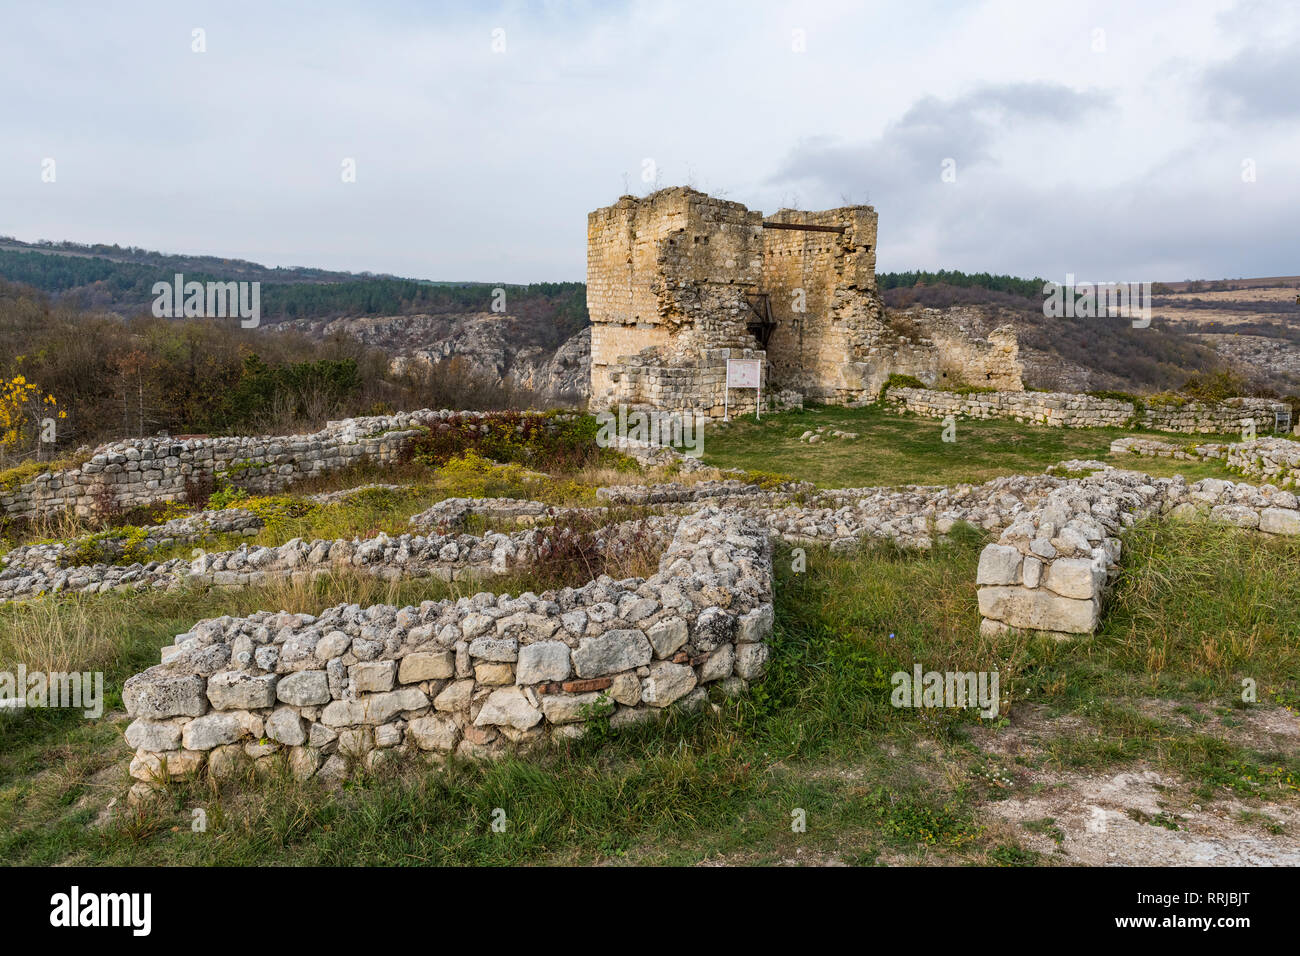 The stronghold of Cherven, Rousse, Bulgaria, Europe - Stock Image